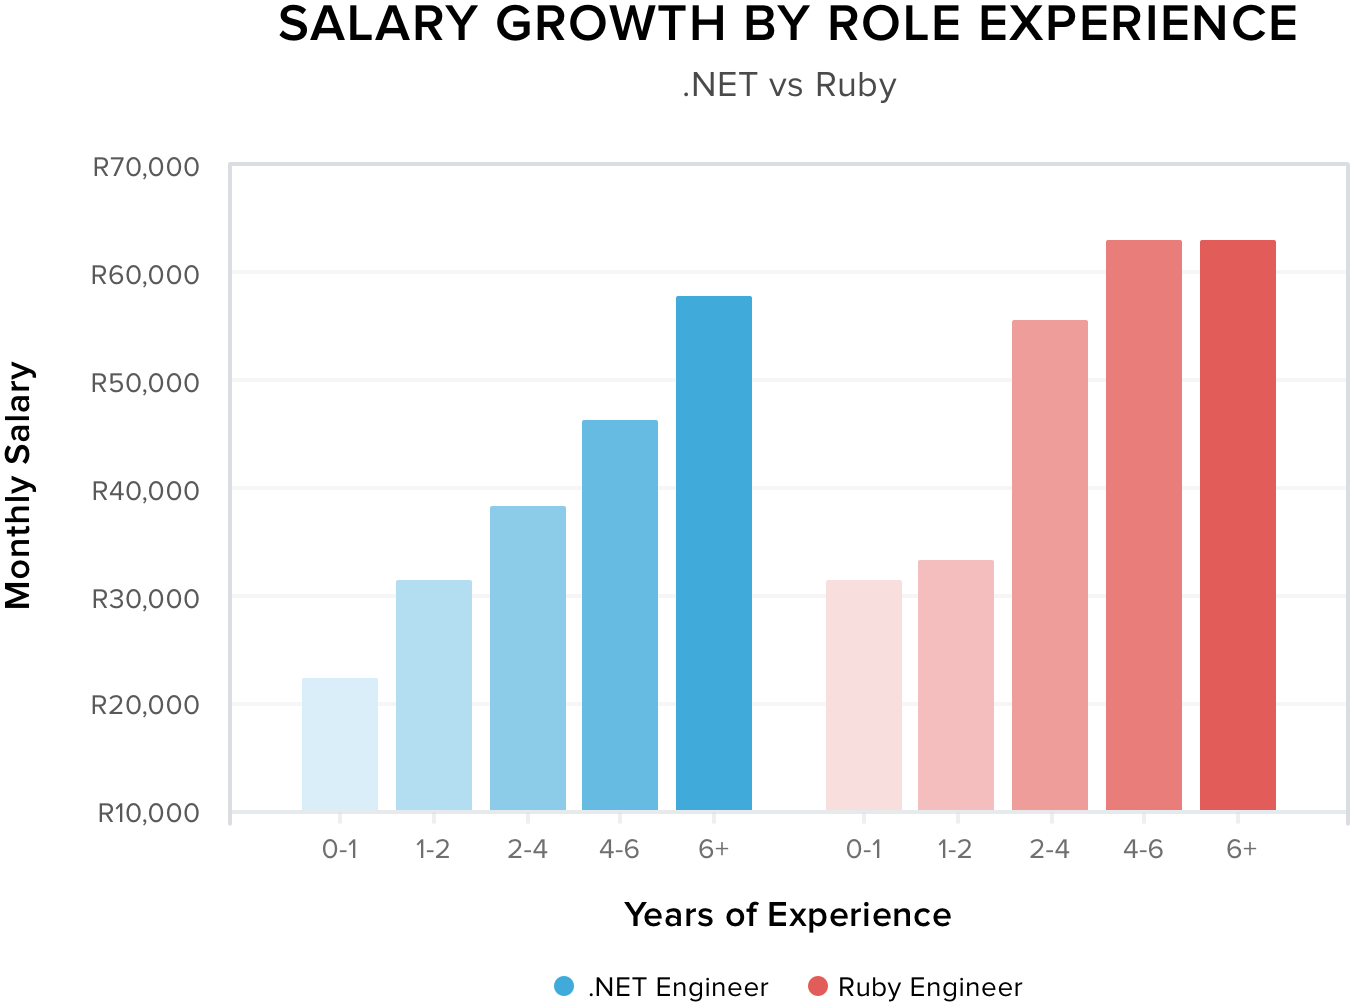 Salary Growth by Role Experience